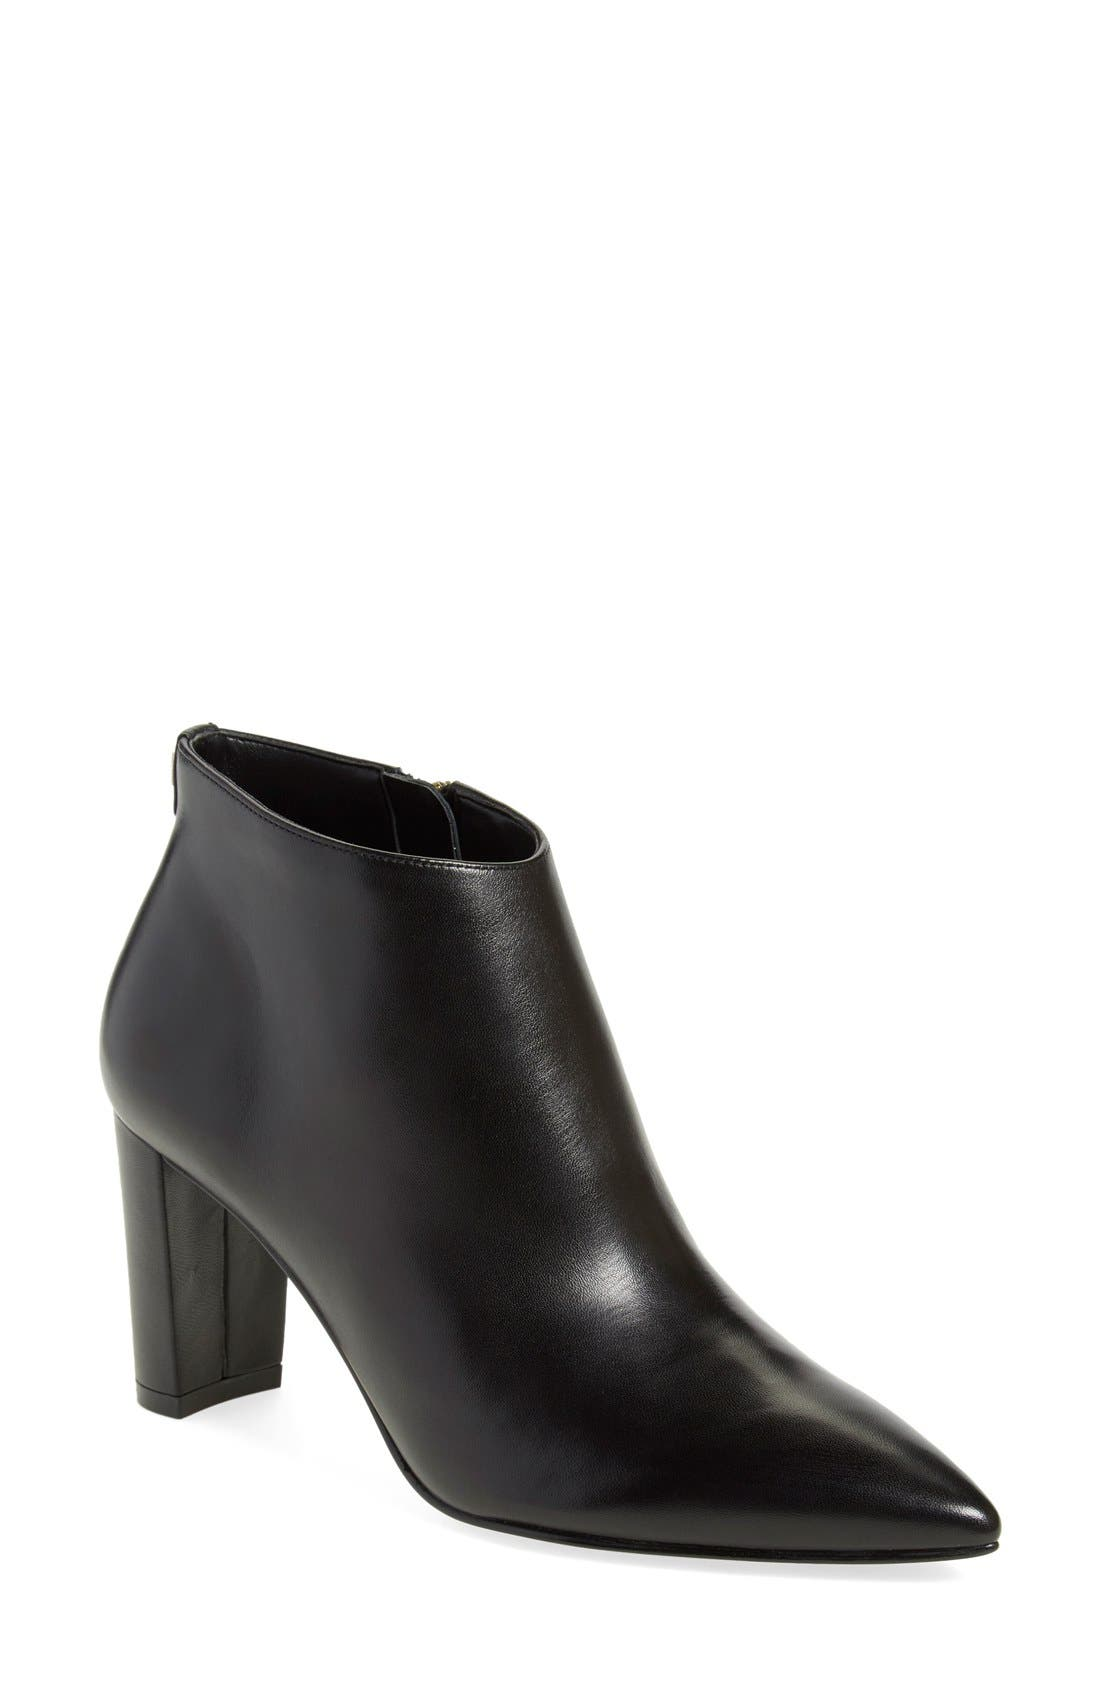 'Lettie' Pointy Toe Bootie,                             Main thumbnail 1, color,                             Black Leather